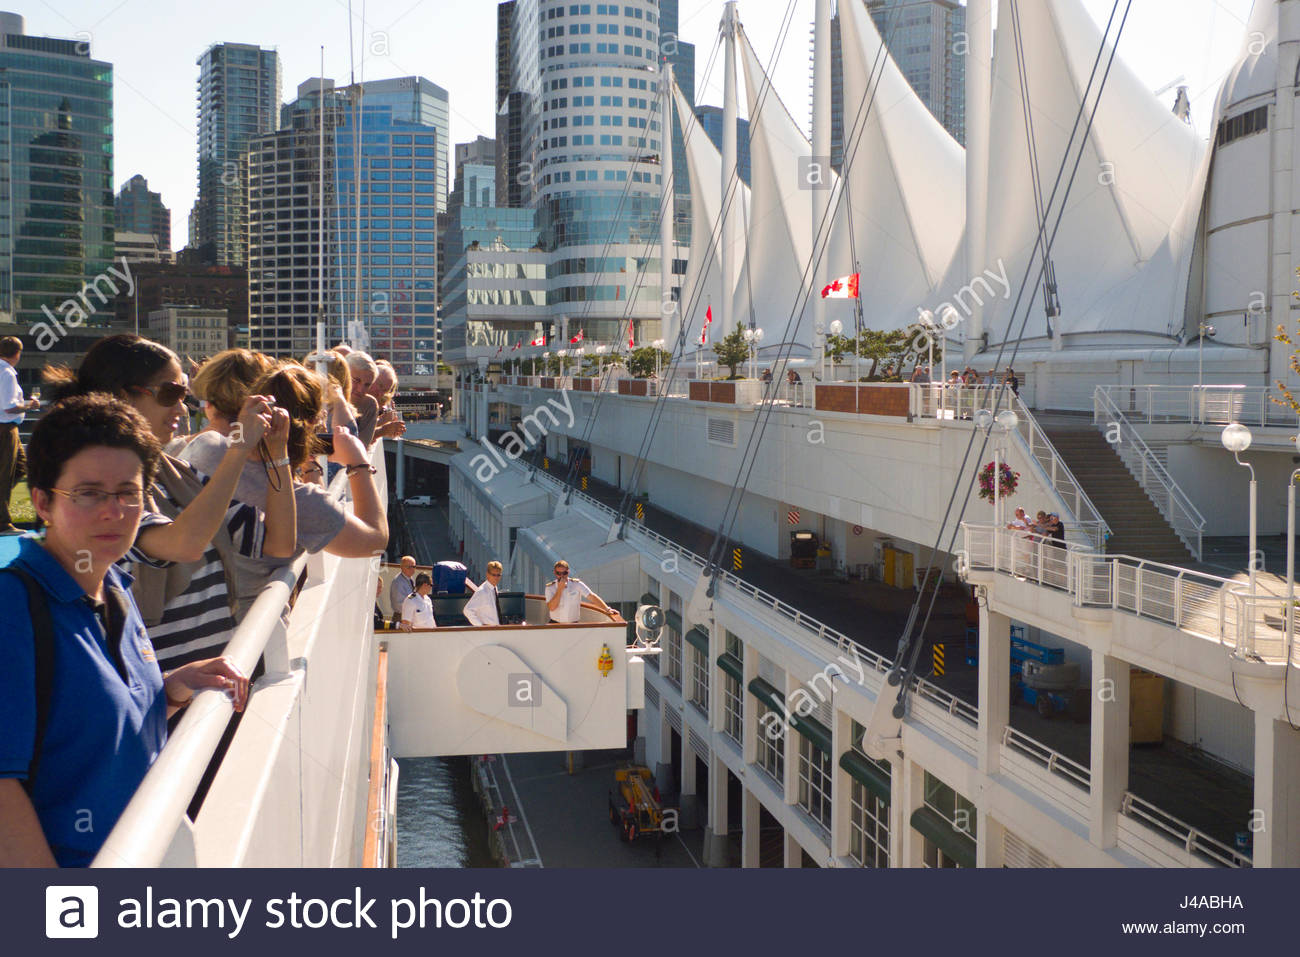 Passengers on the Regency Seven Seas Navigator cruise ship leaving Canada Place, Vancouver, British Colombia, Canada - Stock Image